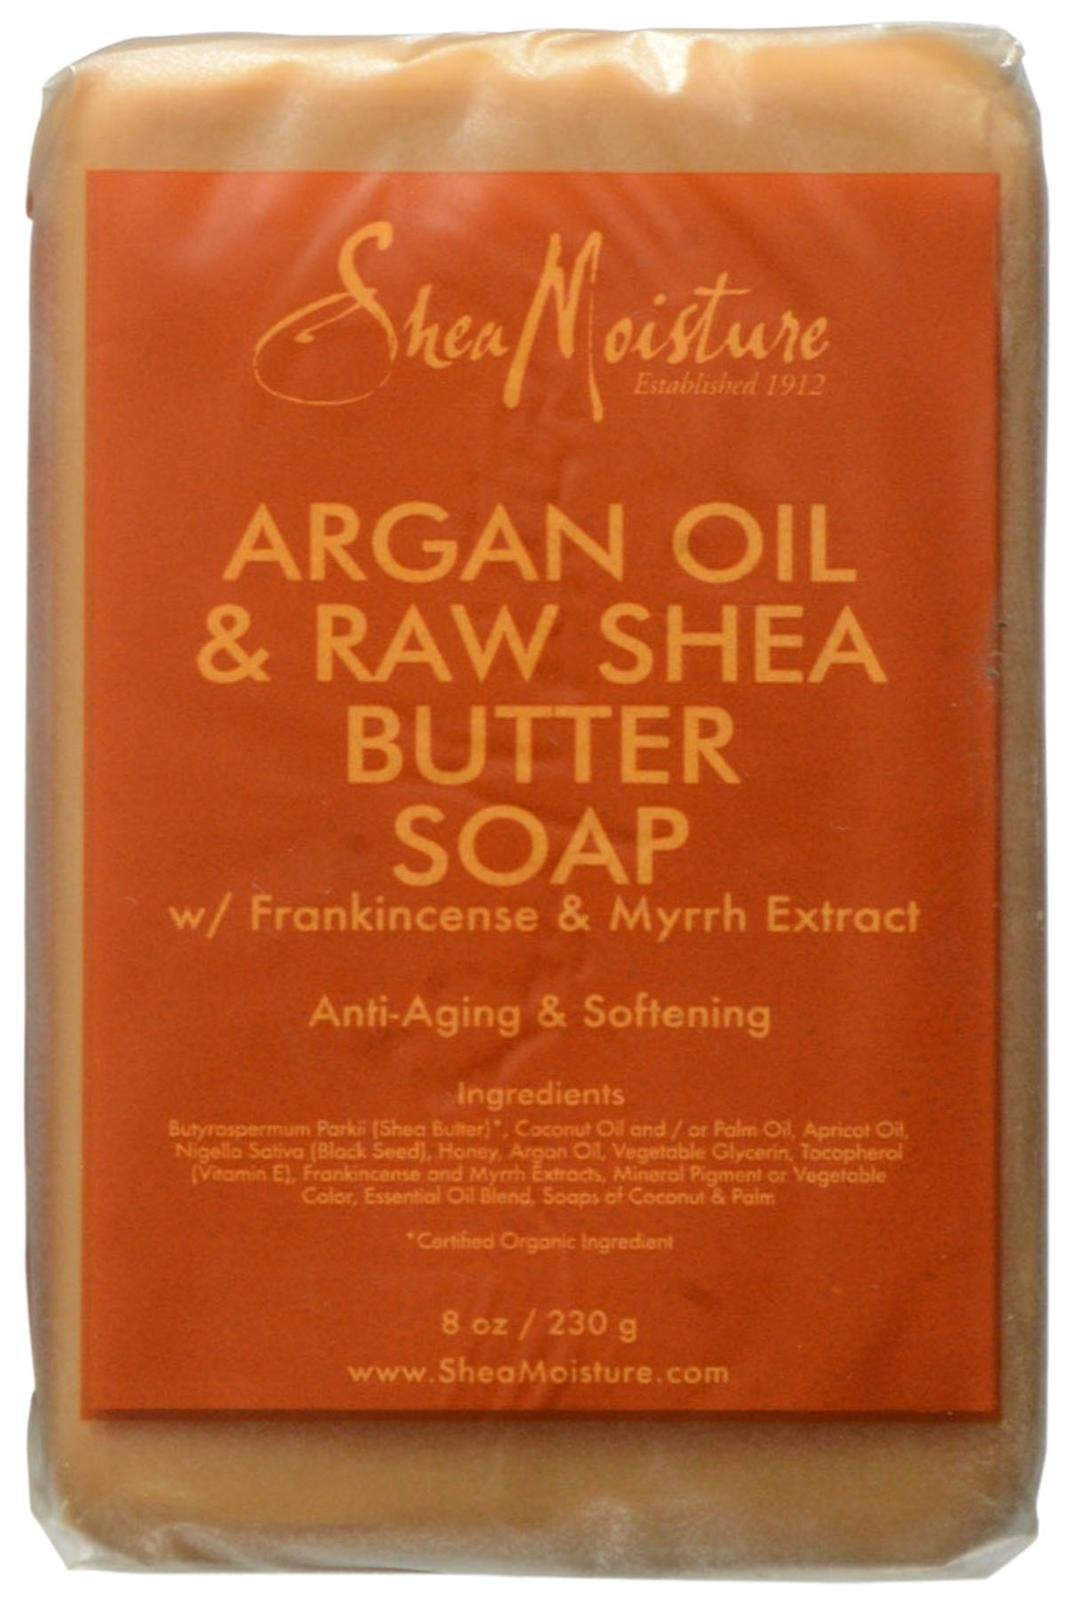 Shea Moisture Argan Oil & Raw Shea Butter Soap, 8 Ounce